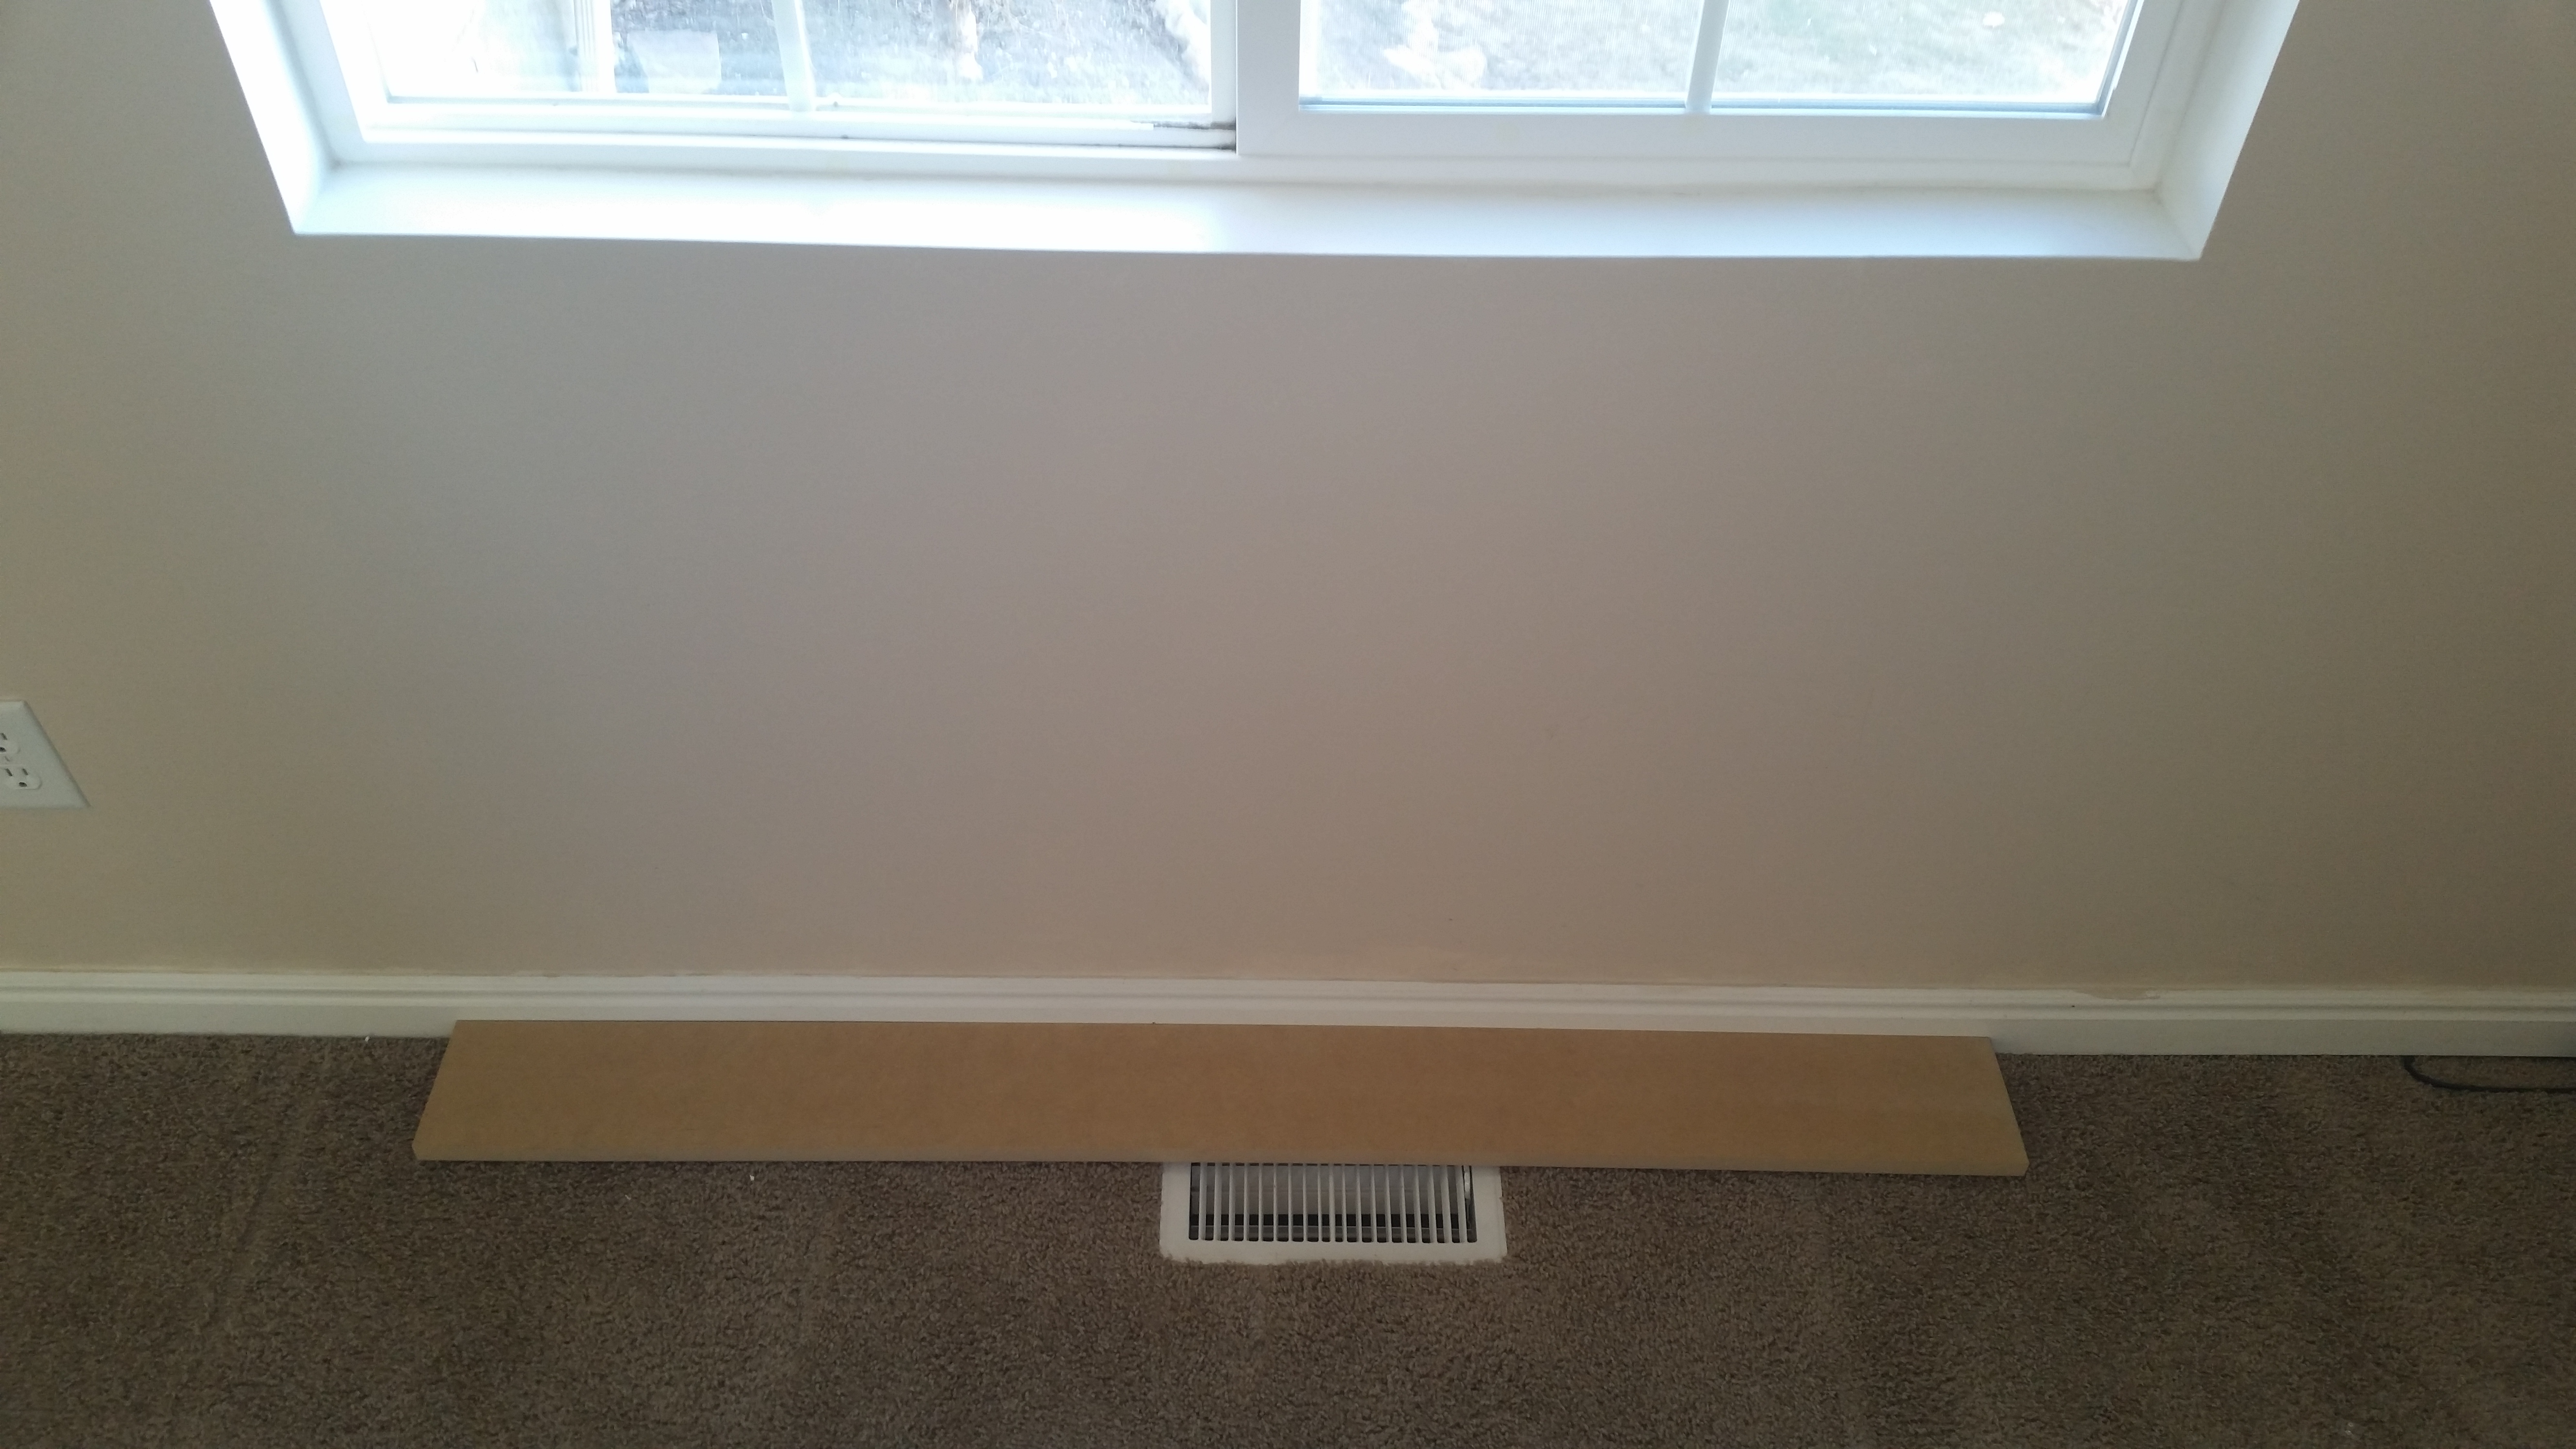 Picture of Window Sill